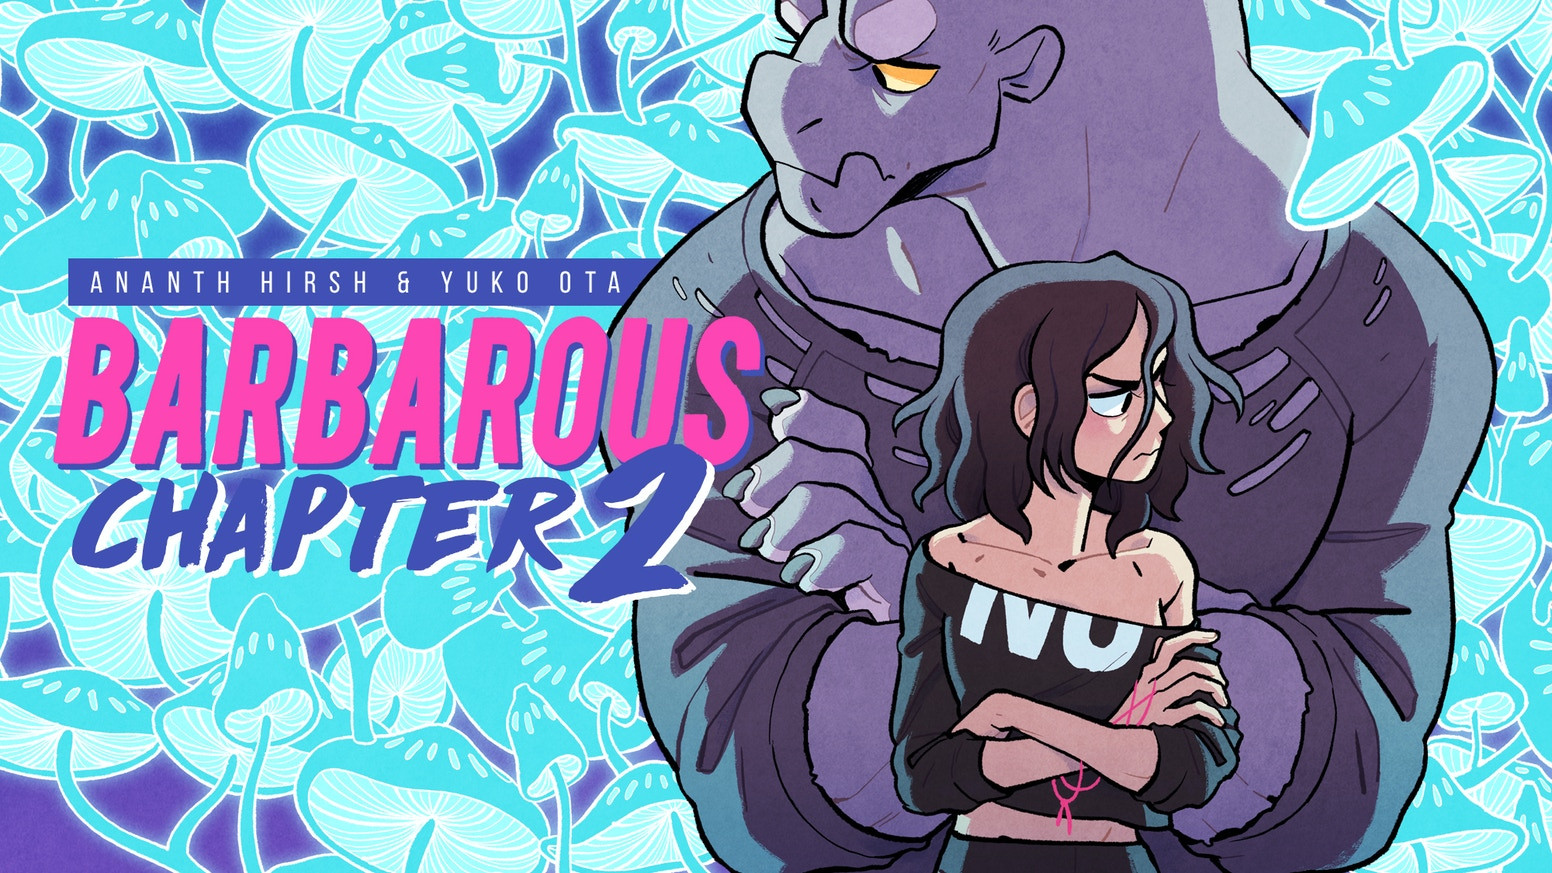 Help us collect Barbarous Chapter 2 in a gorgeous over-sized edition that will match Chapter 1! Percy and Leeds need your help!